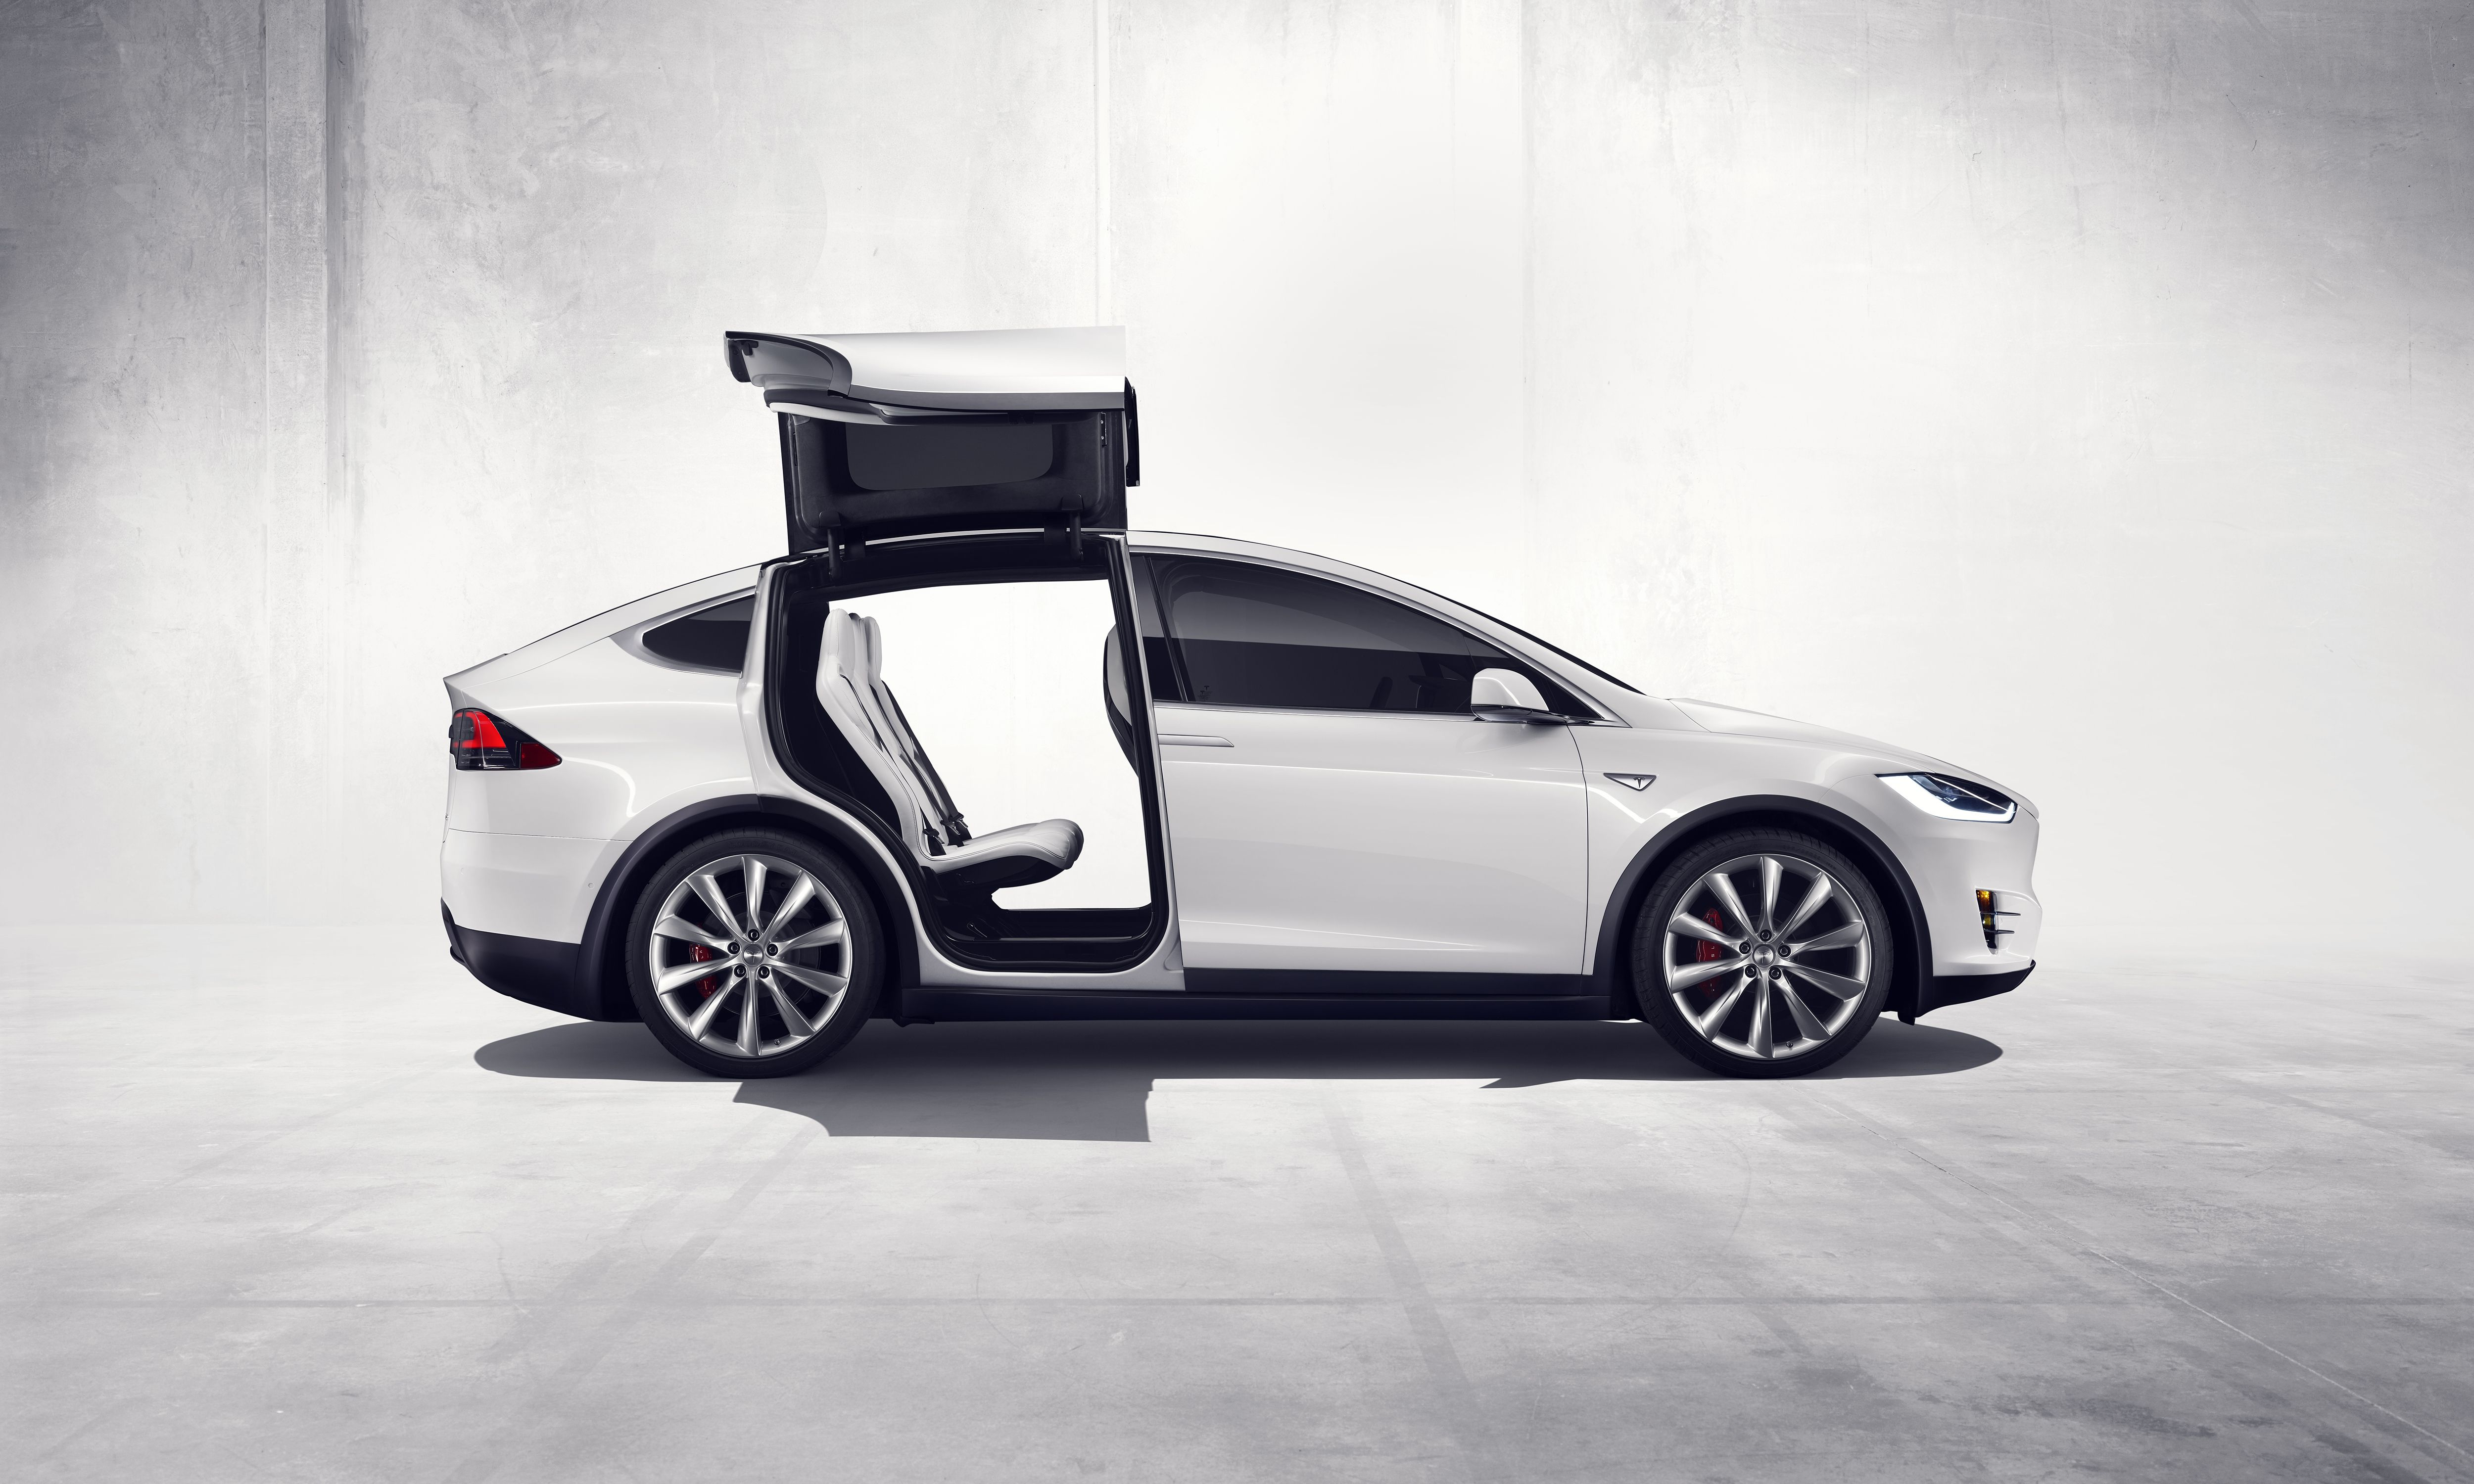 Tesla Takes German Parts Supplier To Court Over Delays In Developing Those Famous Model X Falcon Wing Doors Tesla Model X Tesla Model Tesla X